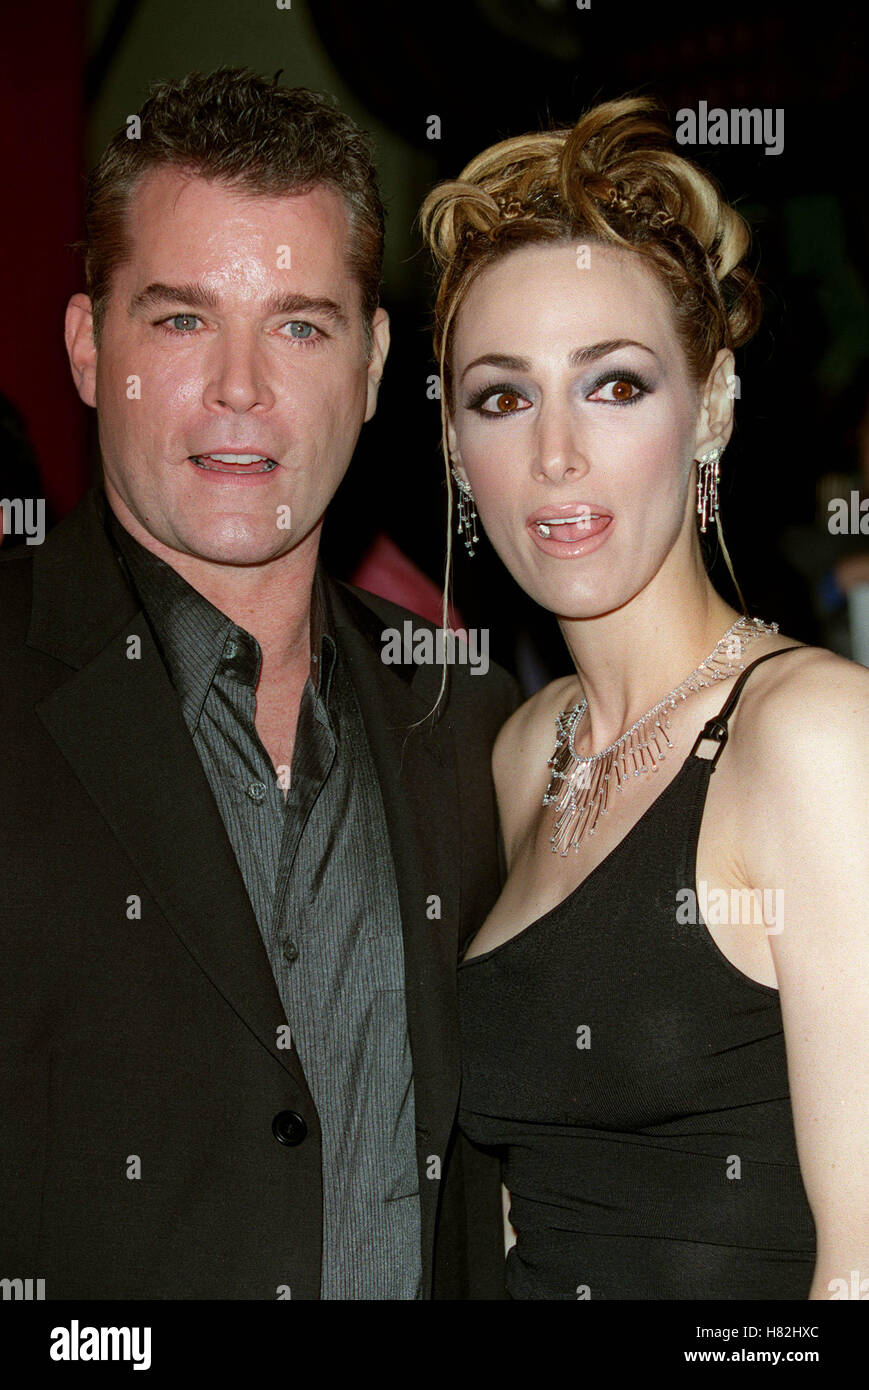 RAY LIOTTA & WIFE BLOW WORLD PREMIERE LOS ANGELES CHINESE ...